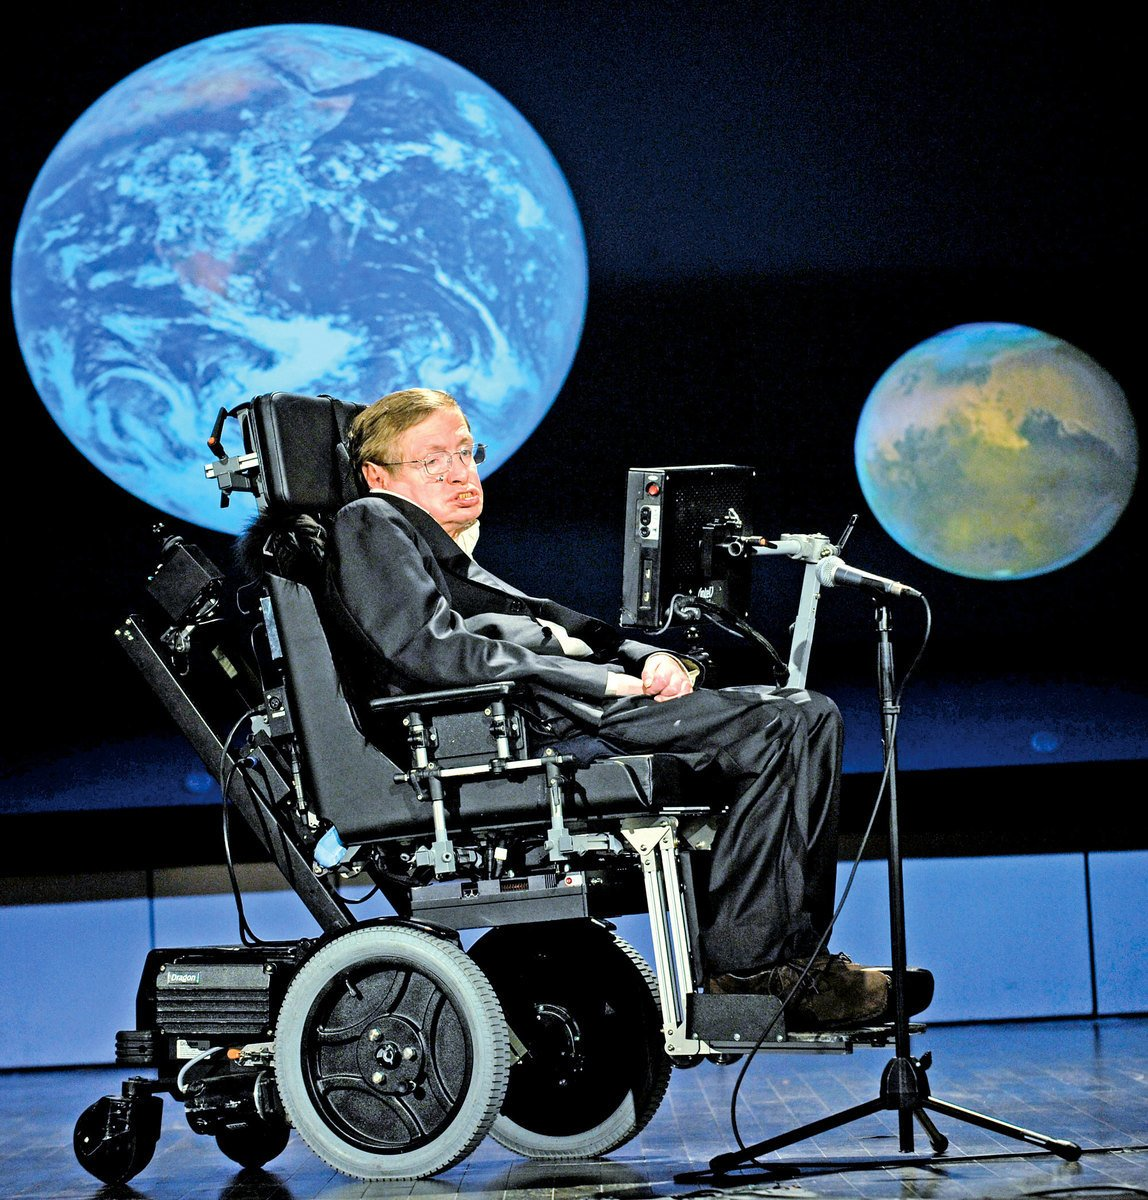 史蒂芬霍金(Stephen Hawking)。(Wikimedia Commons)